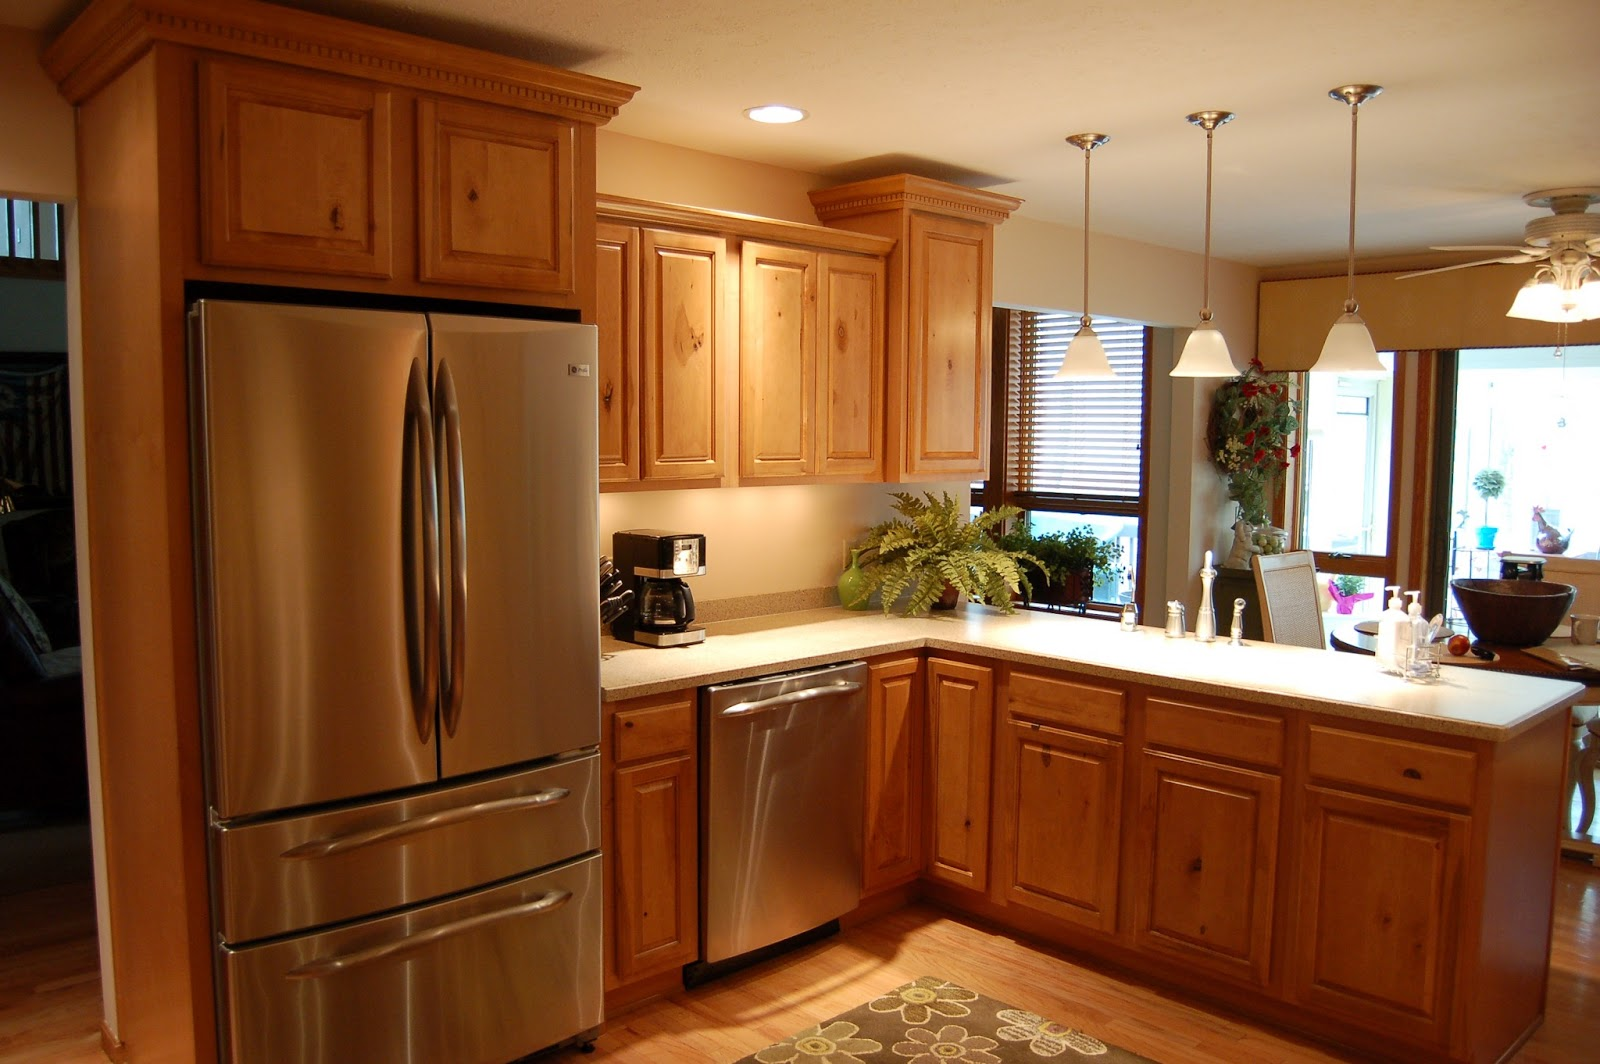 Chicago kitchen remodeling ideas kitchen remodeling chicago for Kitchen ideas remodel